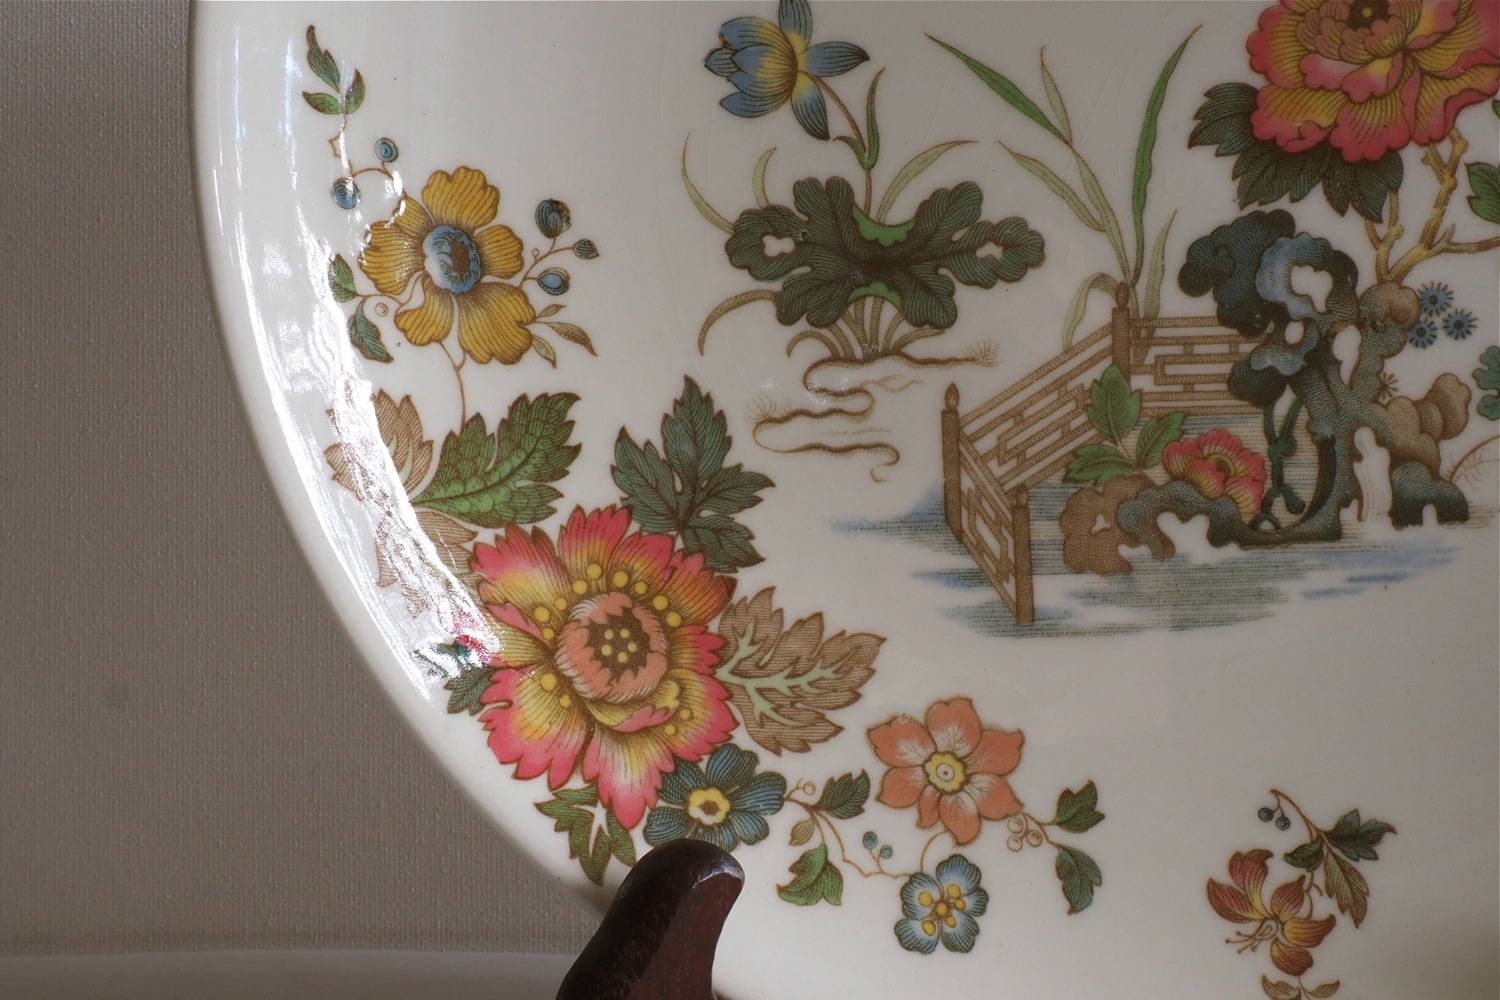 flatten the COVID-19 curve, COVID-19 world pandemic, coronavirus pandemic, how to creatively pass the time during COVID-19 pandemic, Vintage Finds, Vintage Finds on Under The Plum Blossom Tree blog, Vintage Finds Chinoiserie Style, chinoiserie style vintage finds, Wedgwood Eastern Flowers plate, vintage asian girl figurine, vintage standing figurine, magnolia season, spring magnolia, pink magnolia, styling with magnolia flowers, styling with vintage finds, how to style vintage finds, styling with vintage finds and flowers, styling using color white